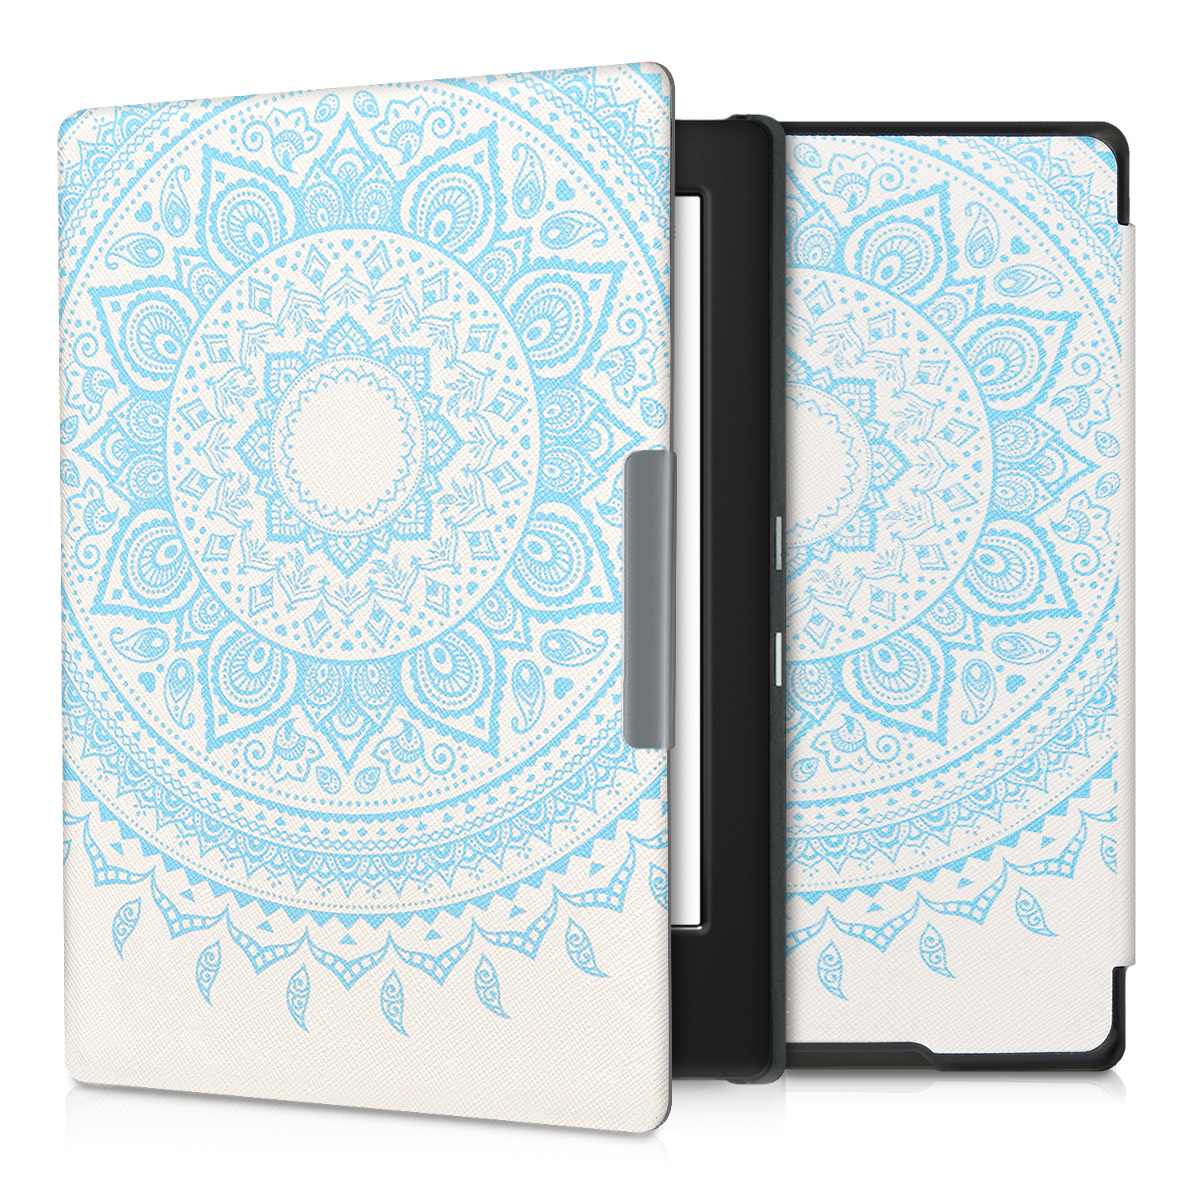 Synthetic leather flip cover for kobo aura h2o edition 1 for Housse kobo aura h2o edition 2